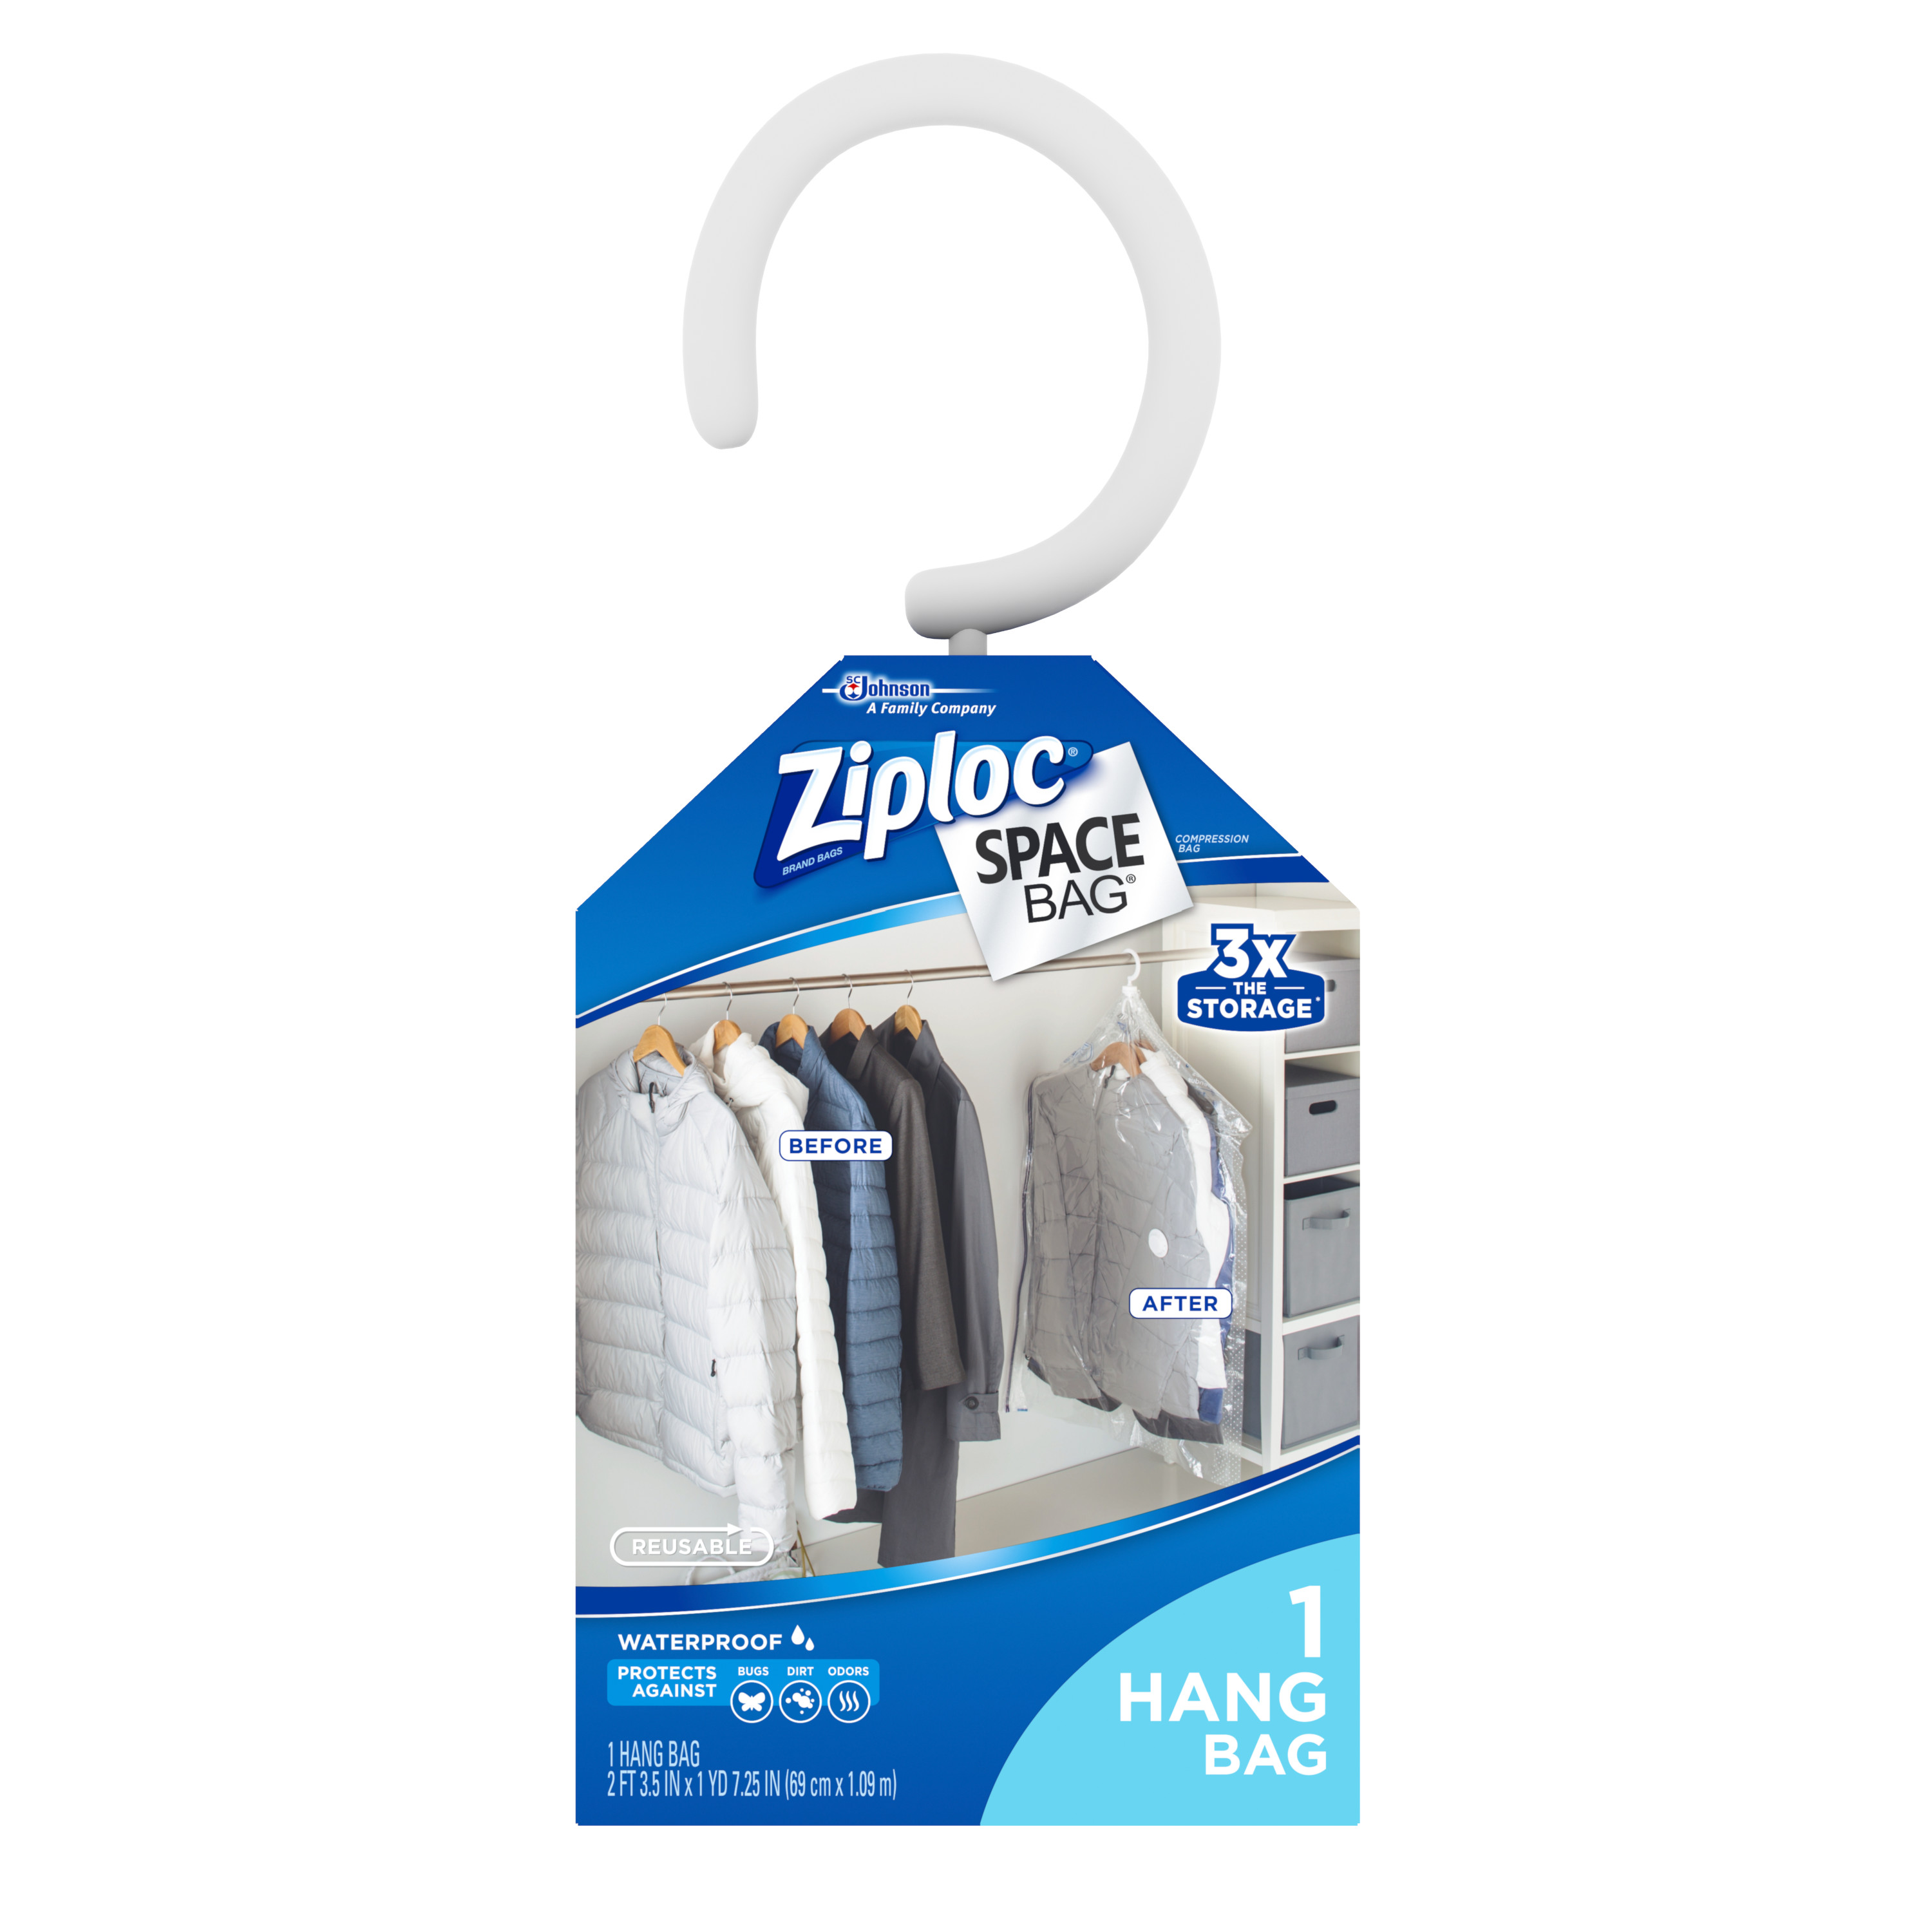 Ziploc Space Bag Hanging Suit Bag 1 count